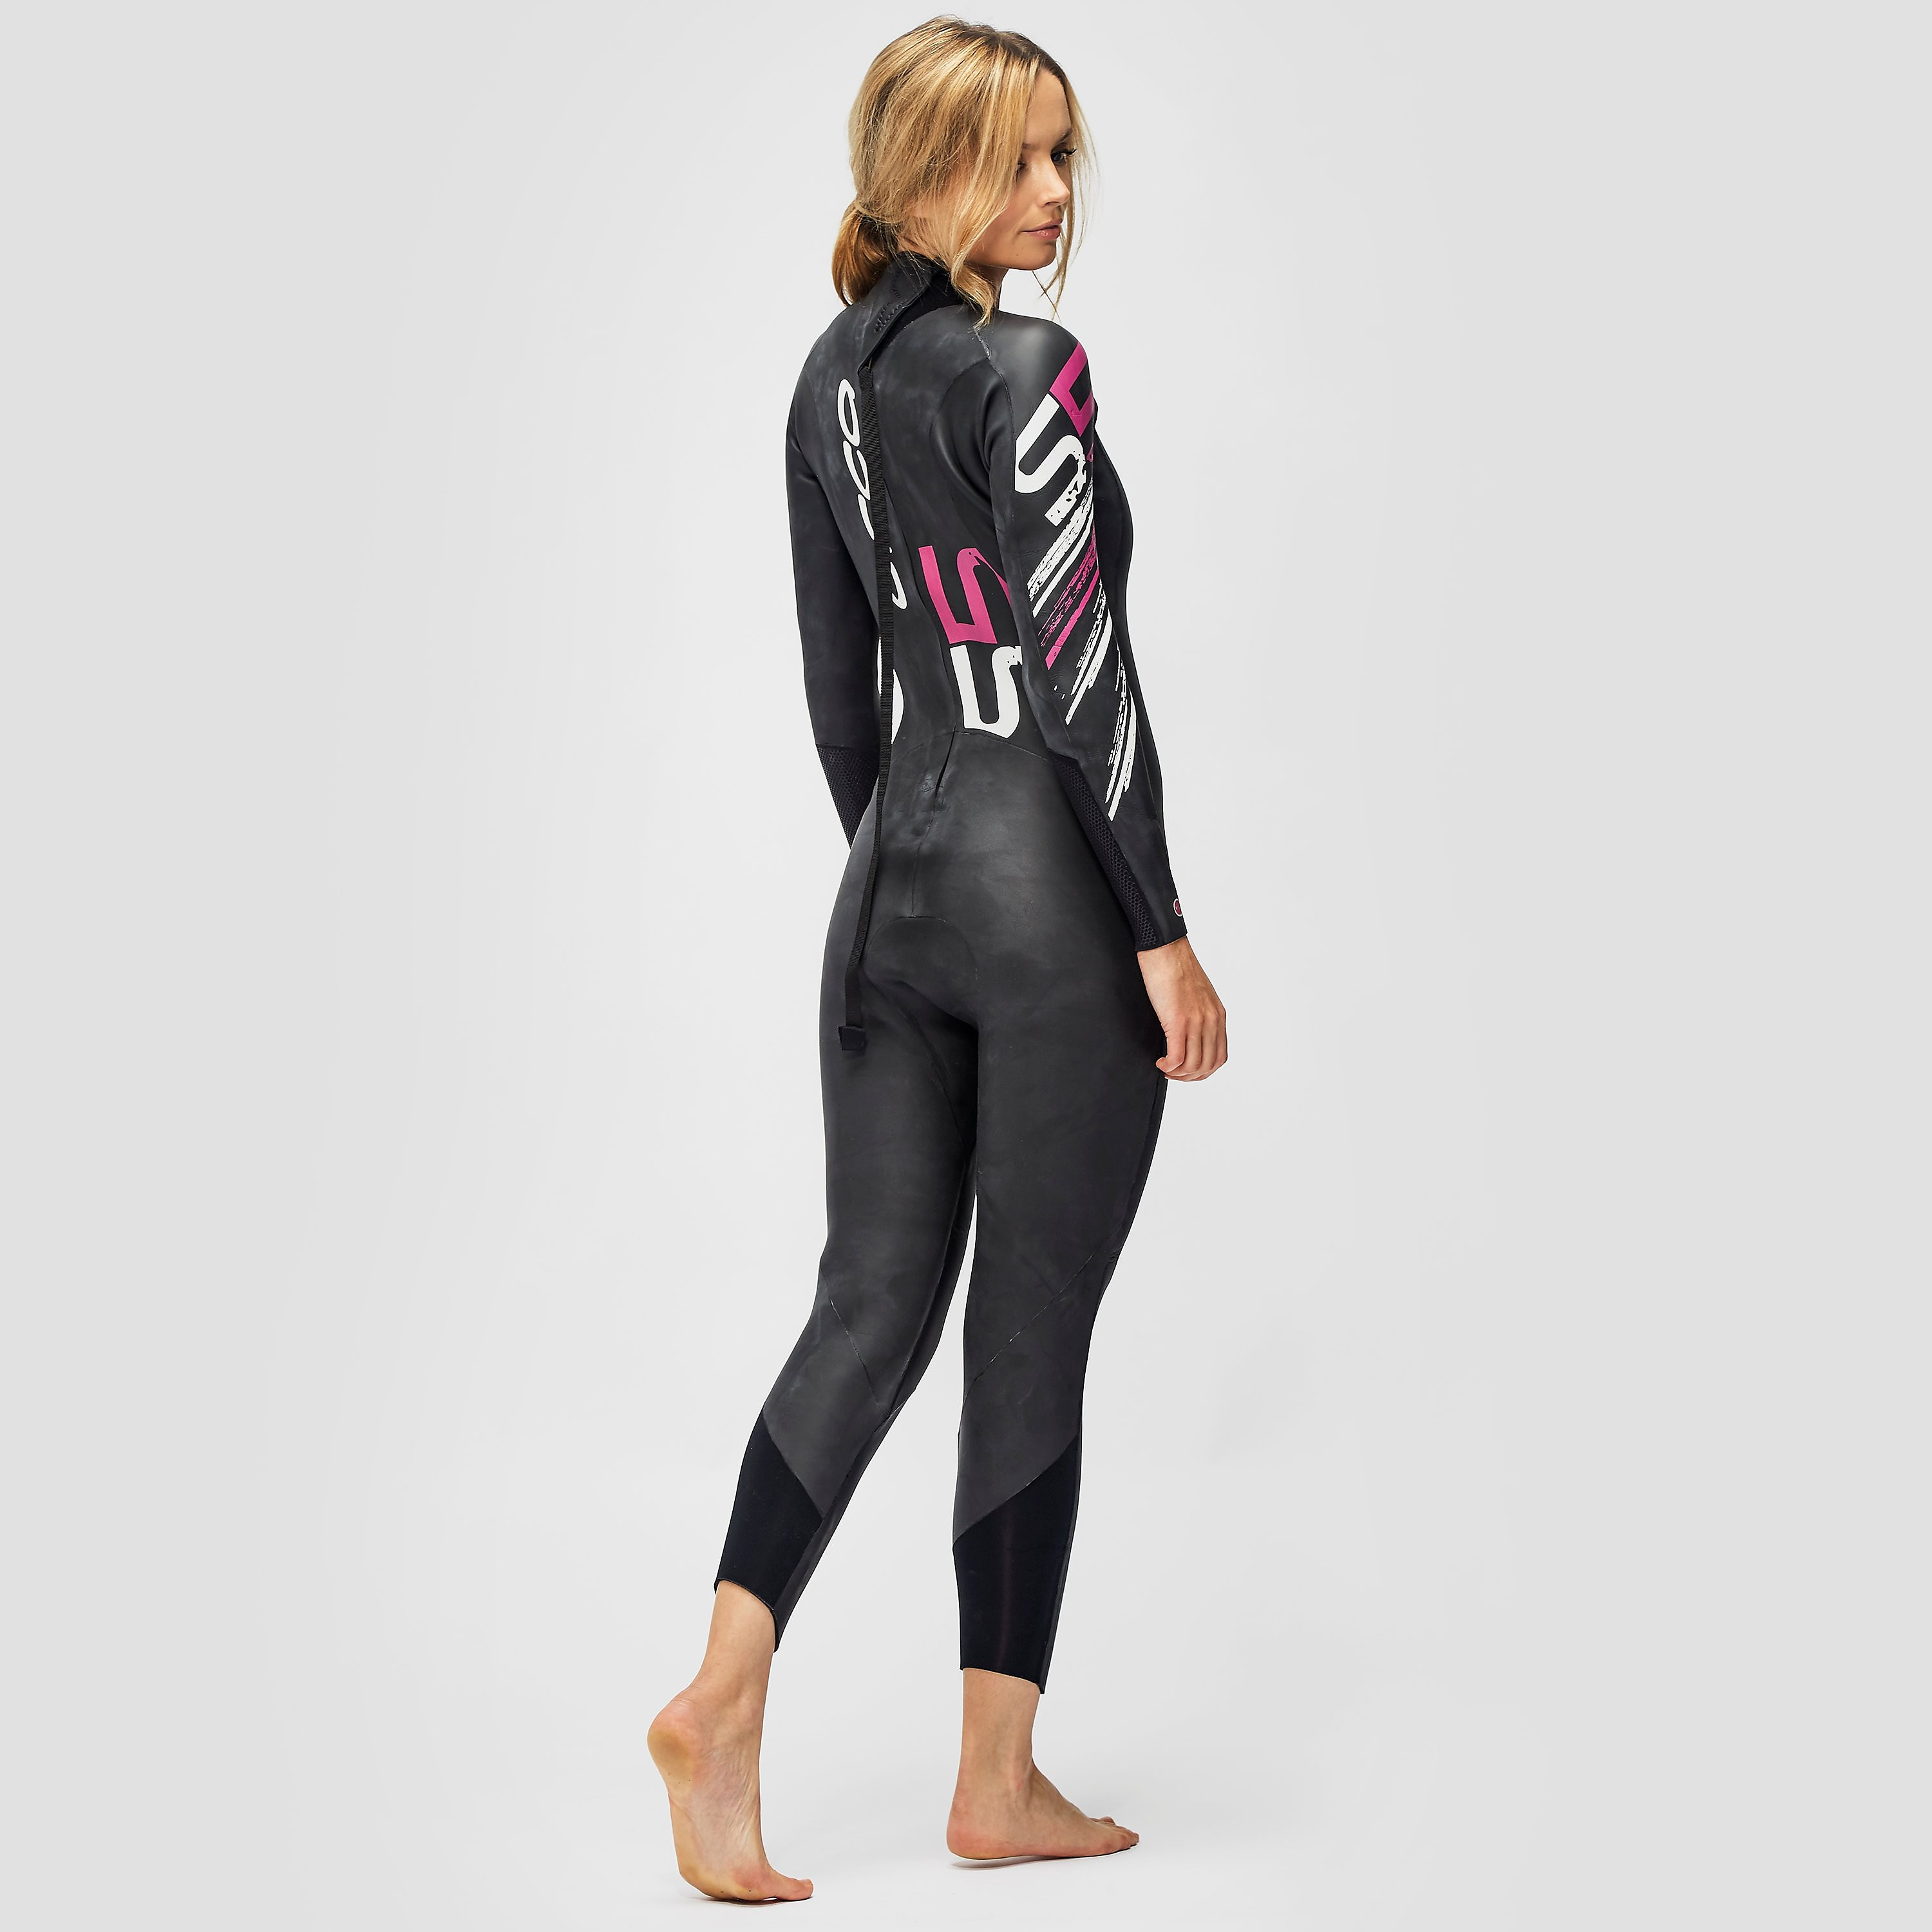 Orca S5 Full Sleeve Wetsuit